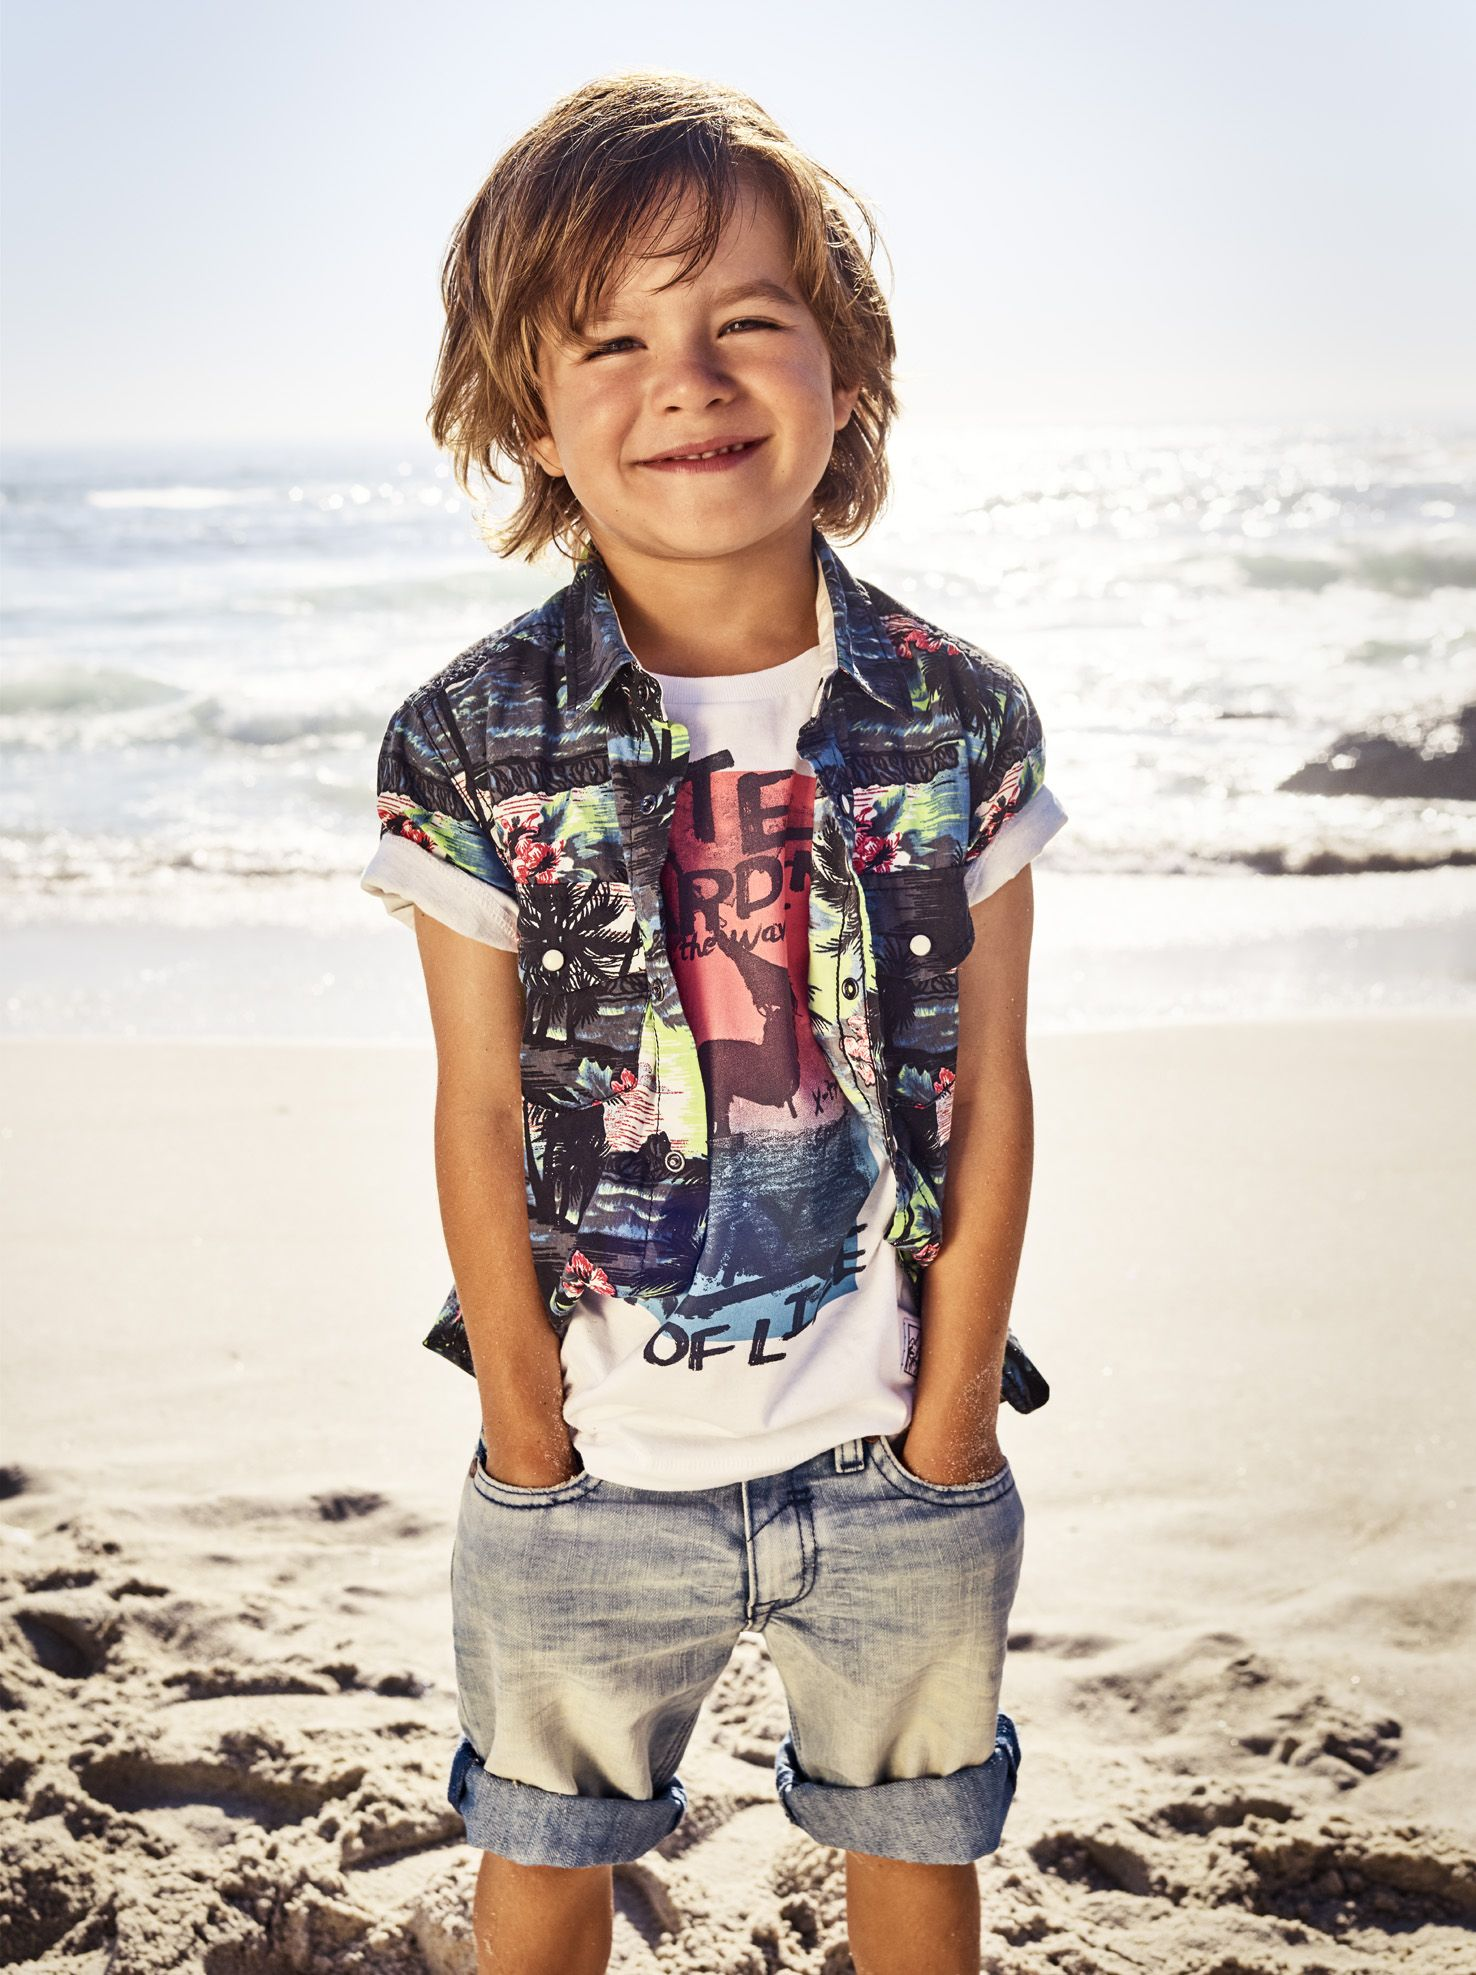 to wear - Boys Little fashion pictures video